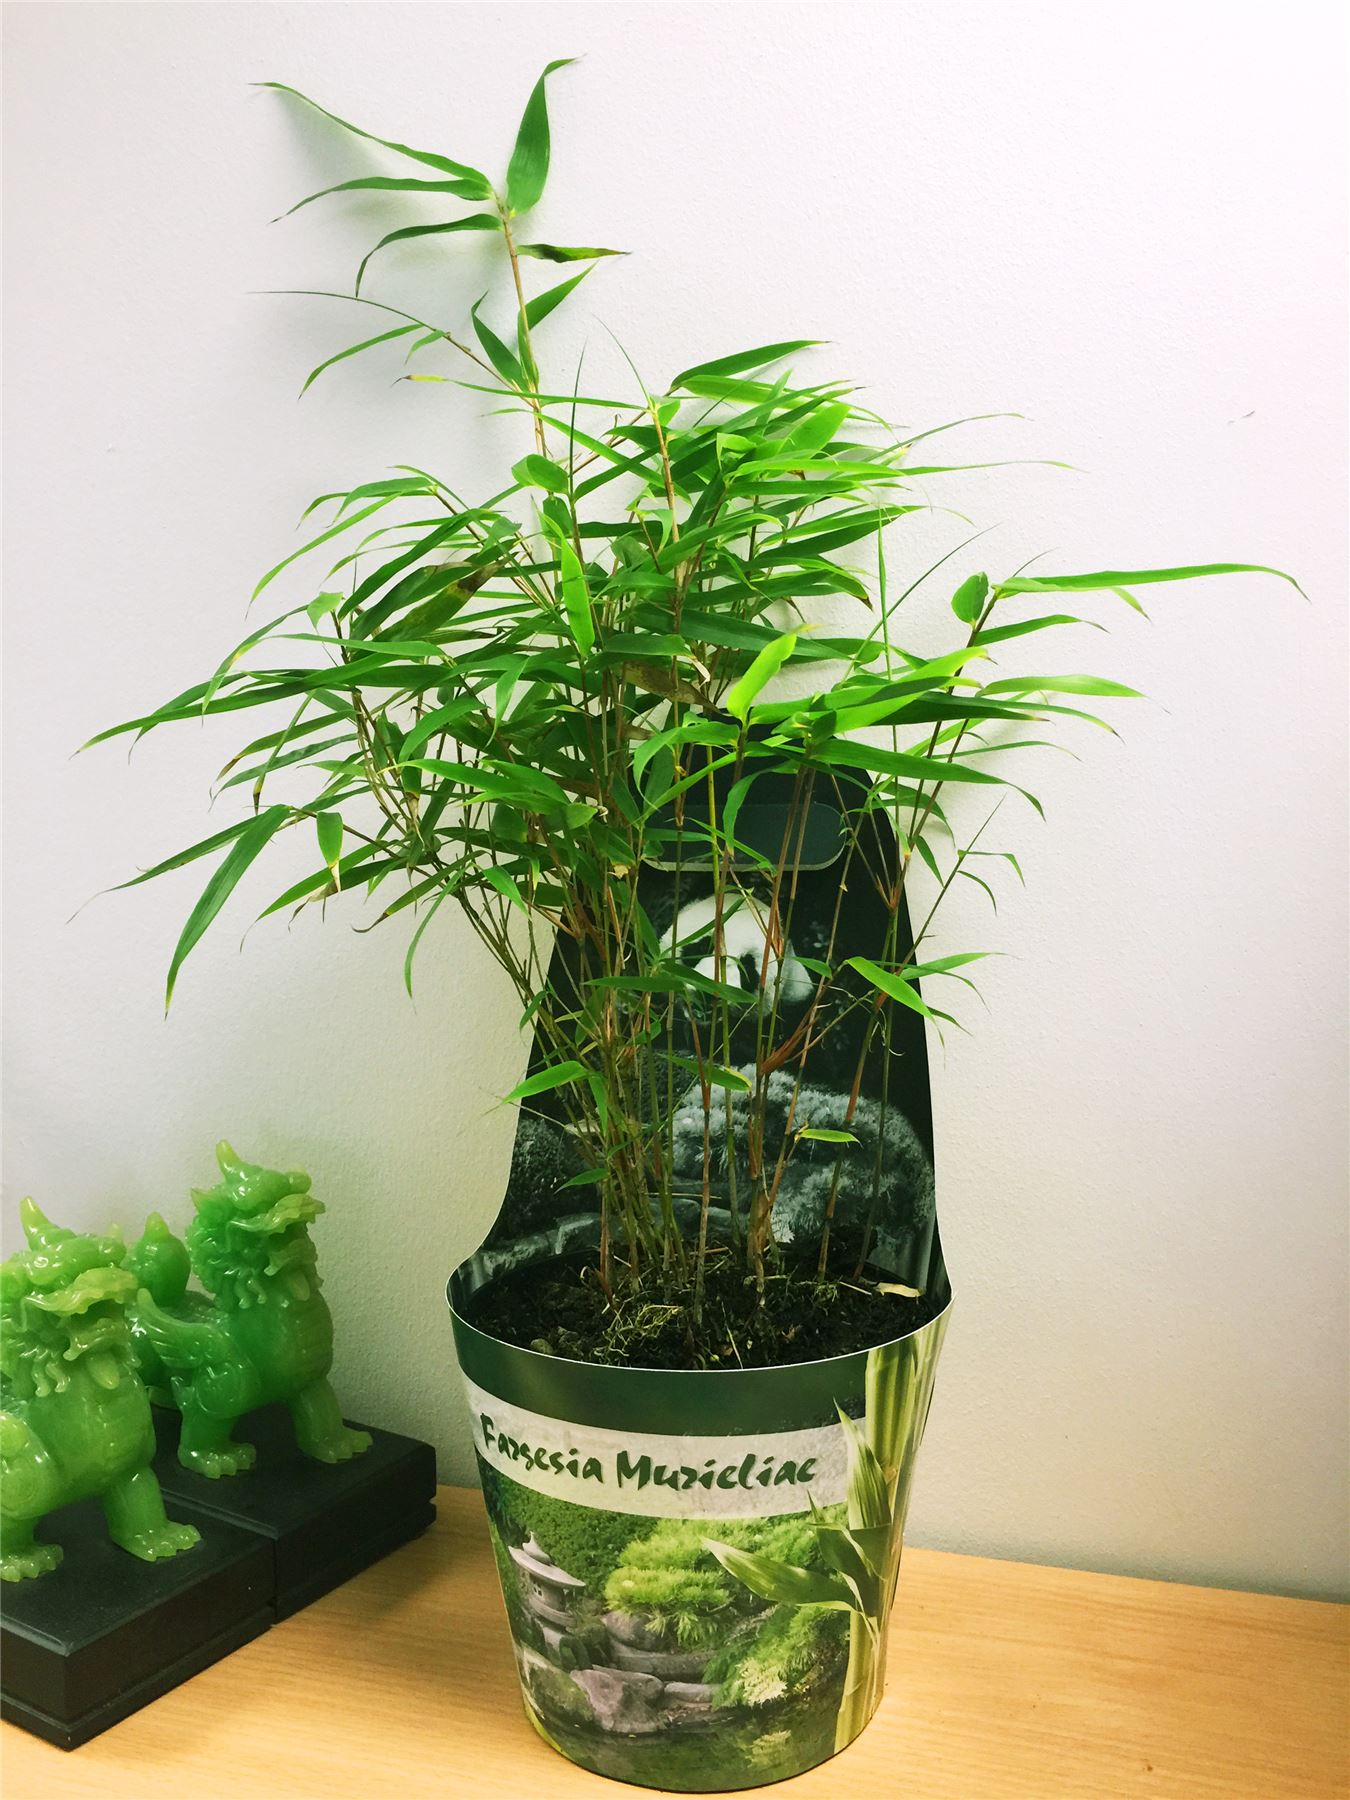 House Plants: 1 Bamboo Hardy Evergreen Gardening House Plant In Pot